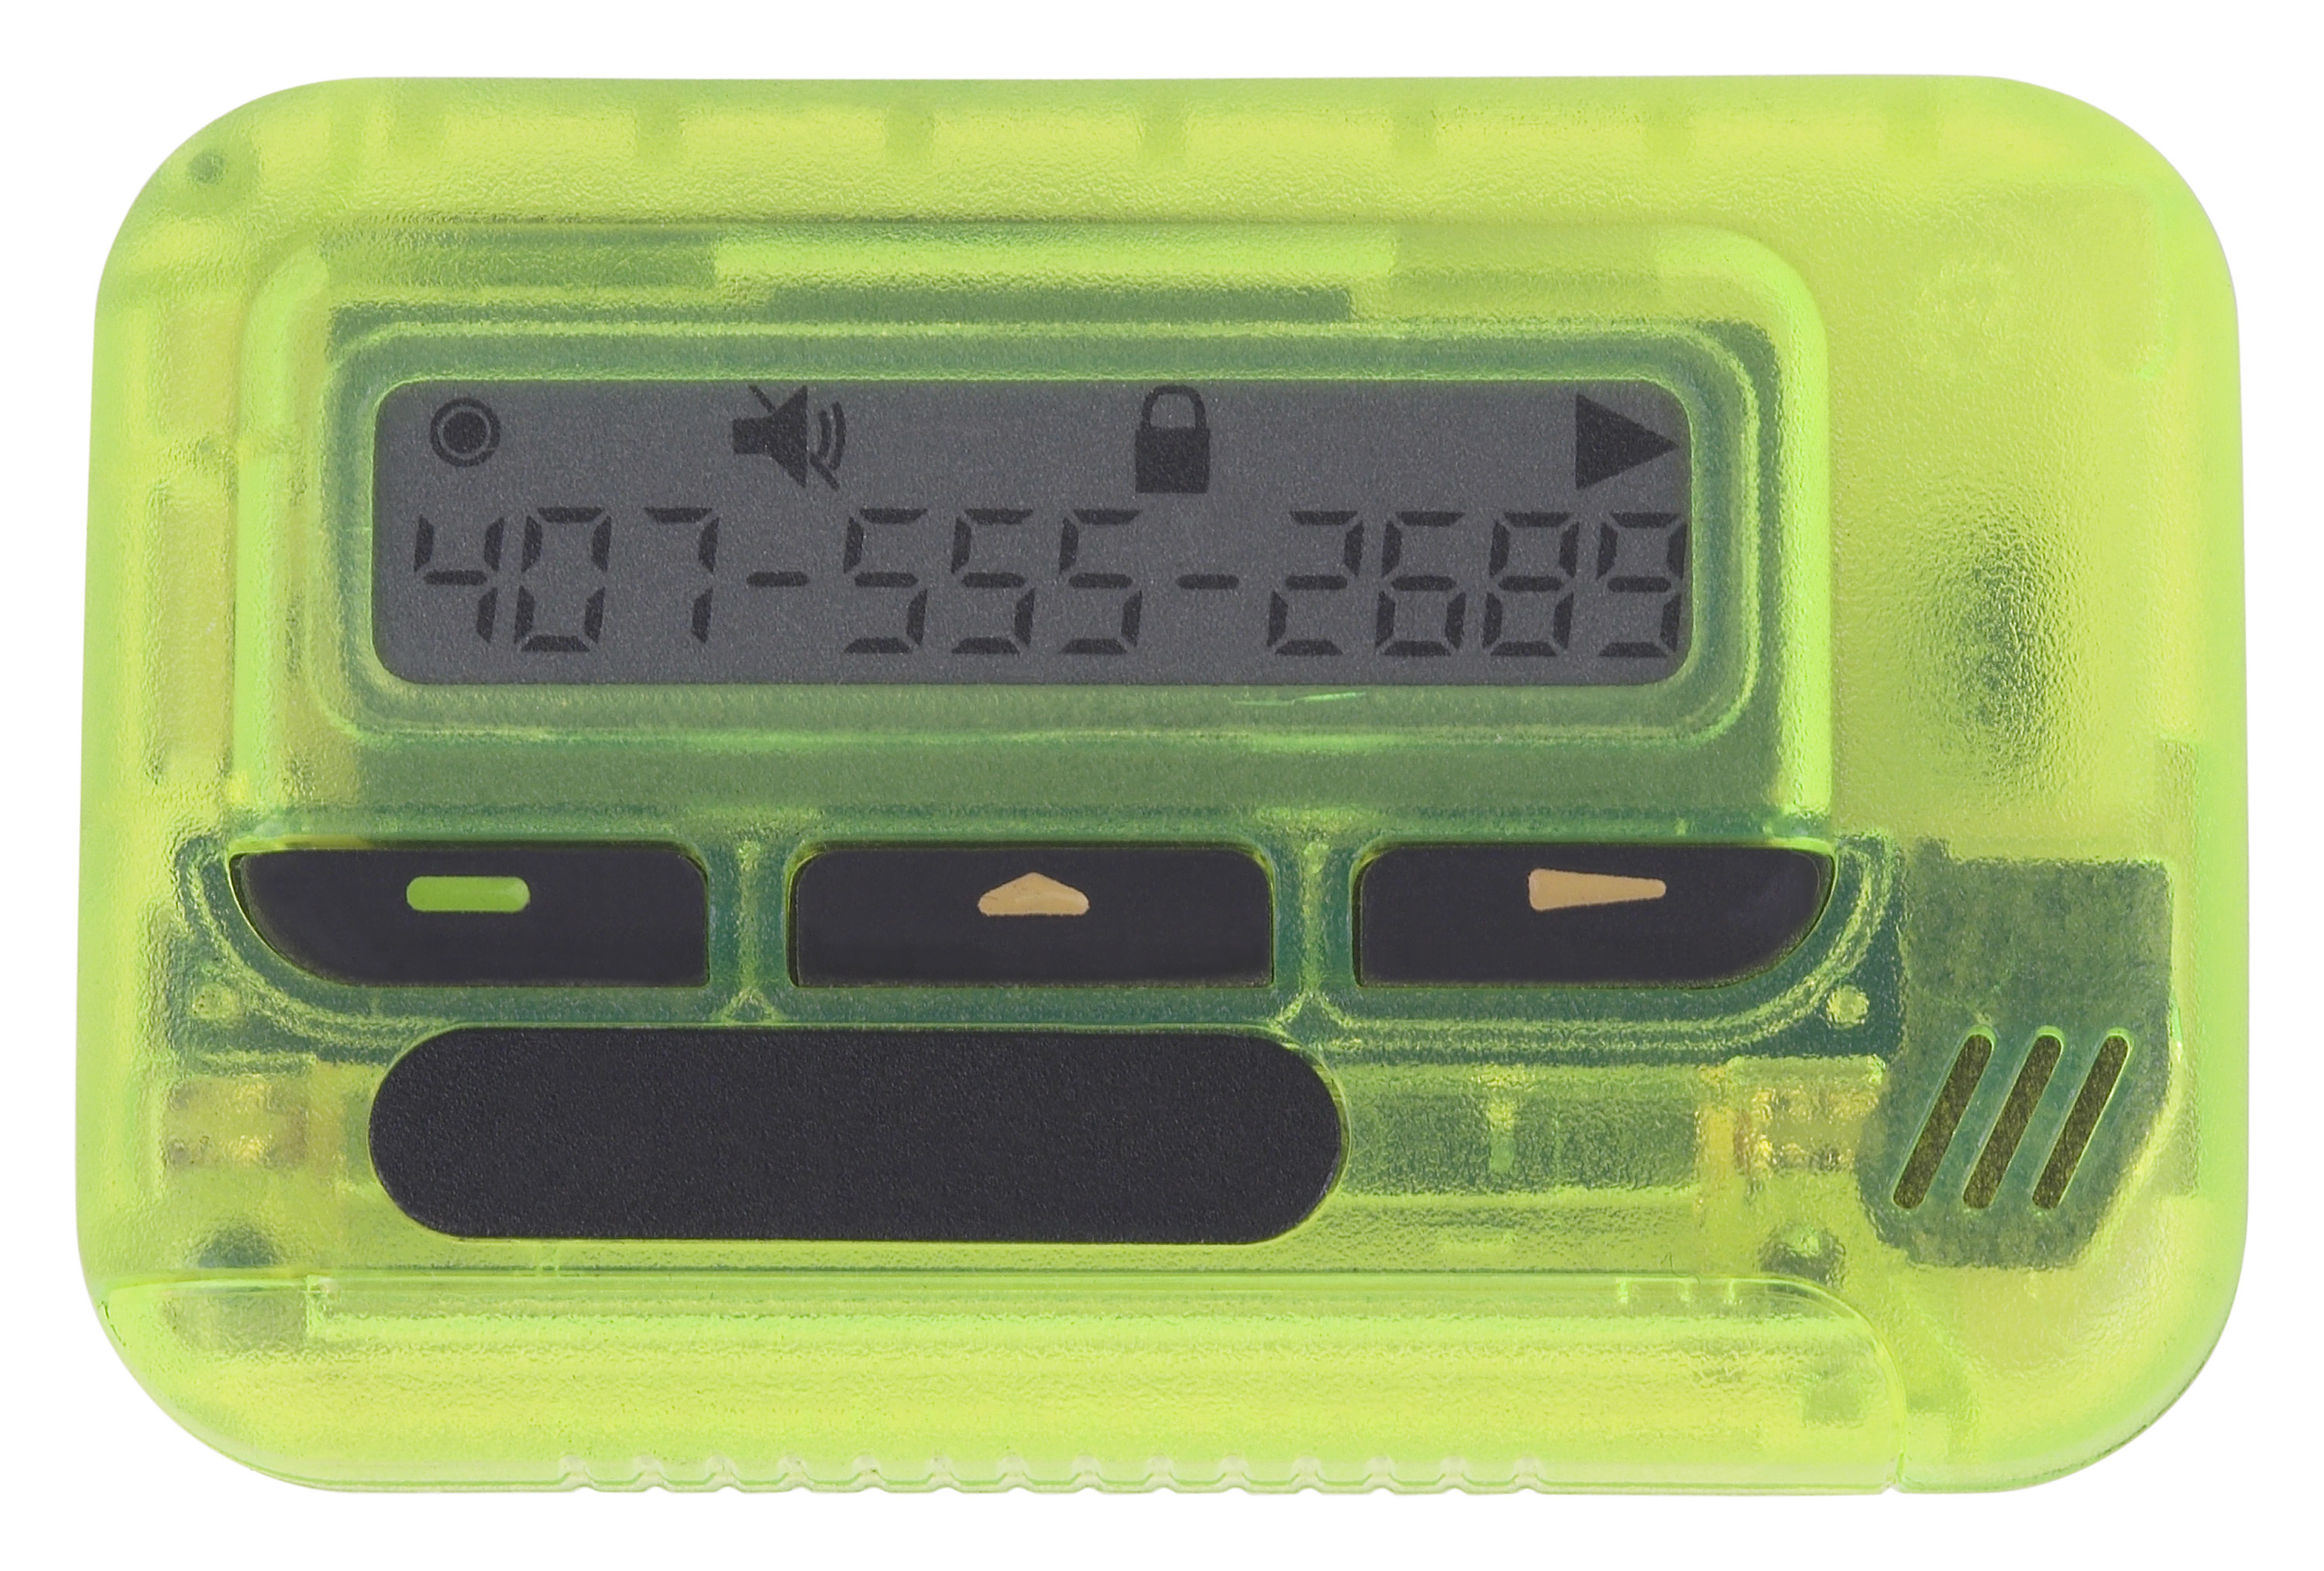 A lime green transparent pager